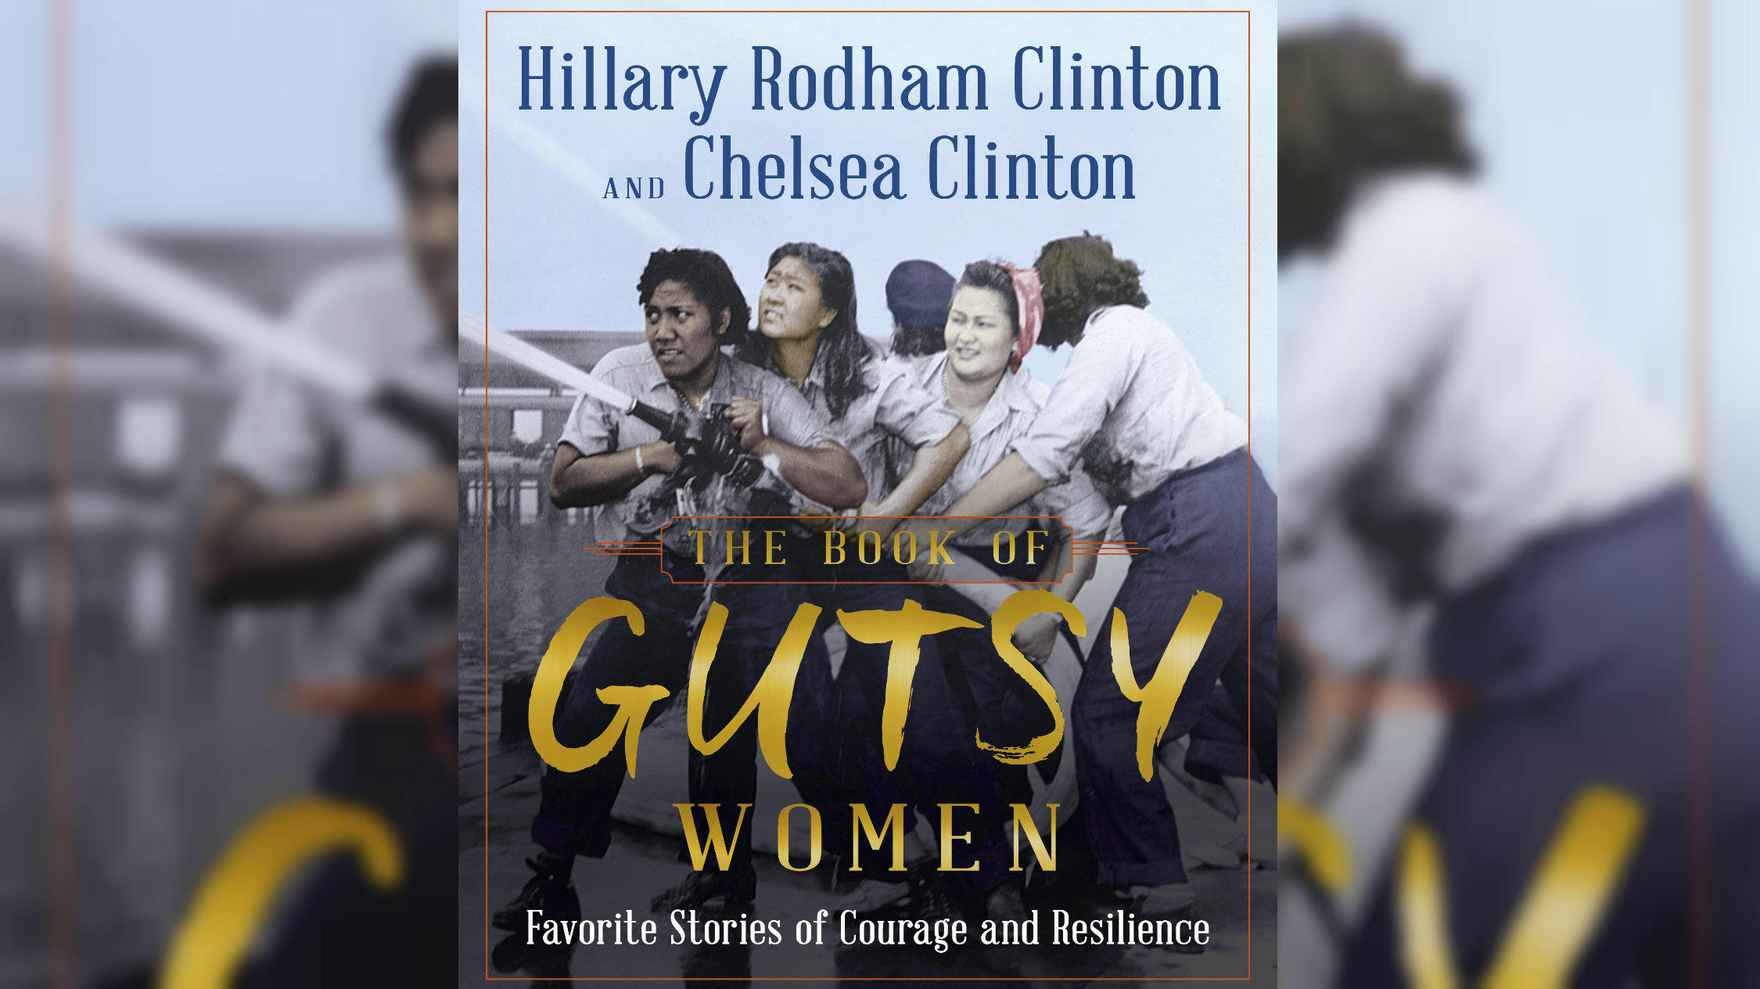 book-of-gutsy-women.jpg